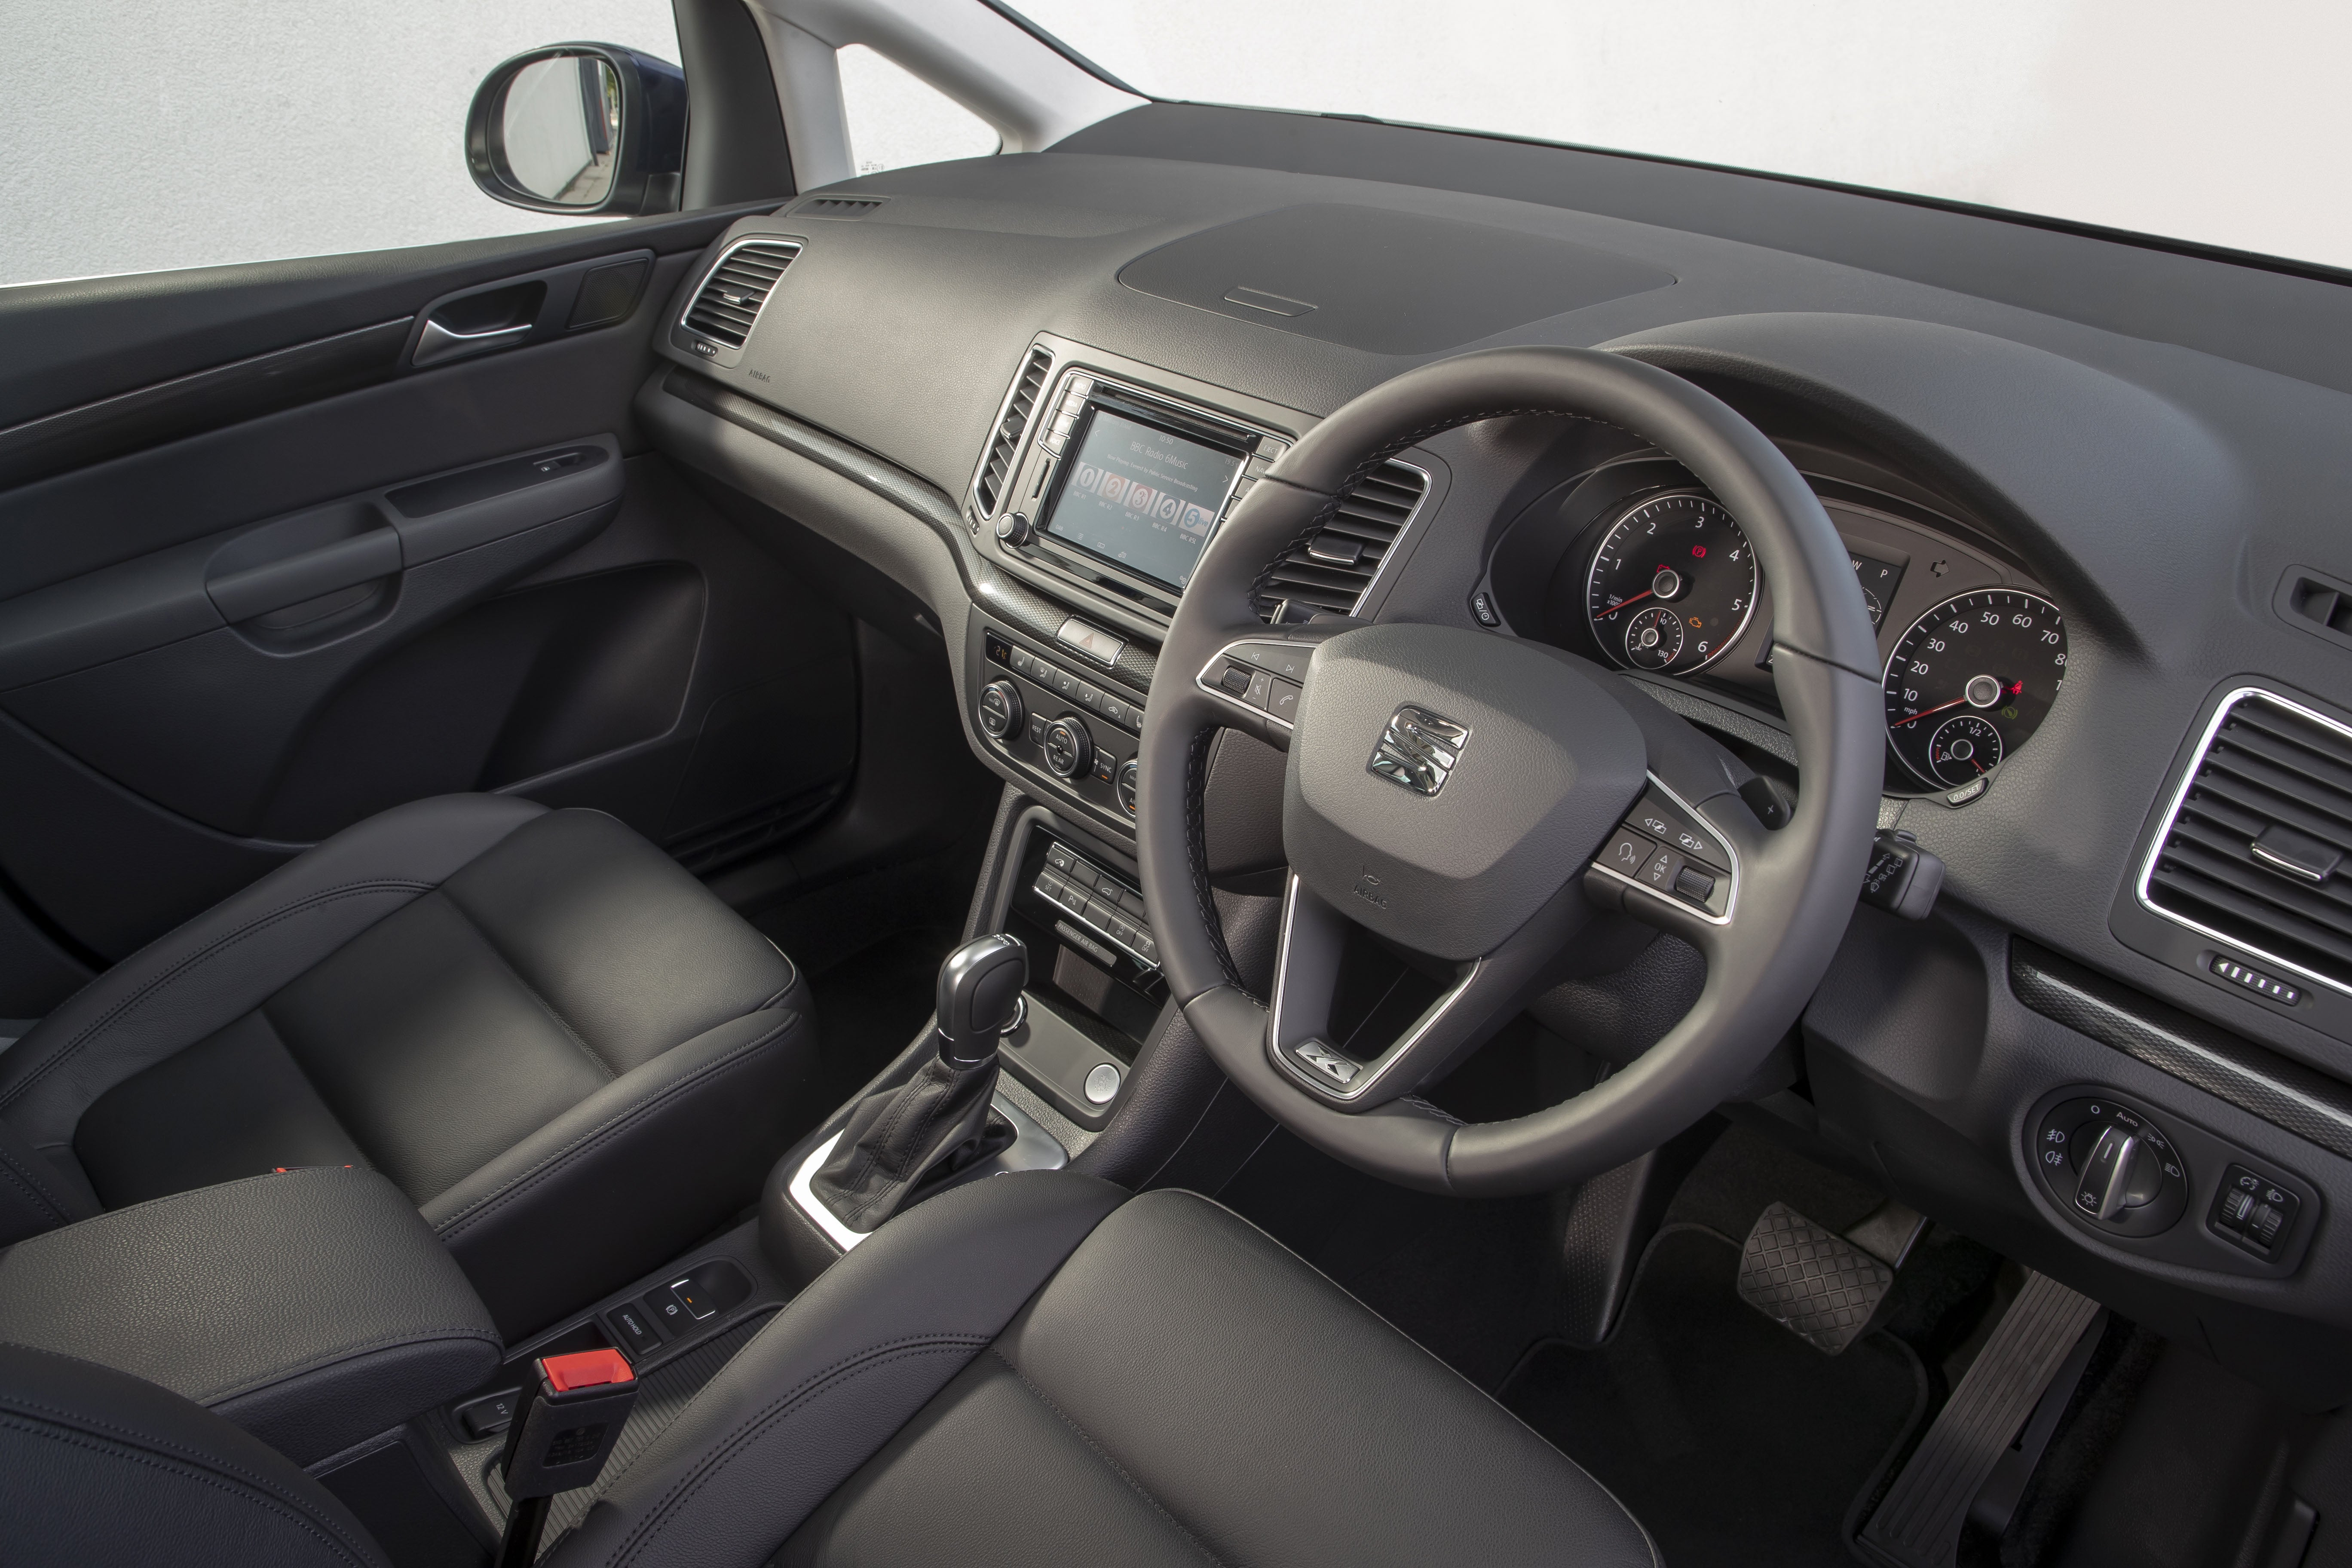 SEAT Alhambra Front Interior